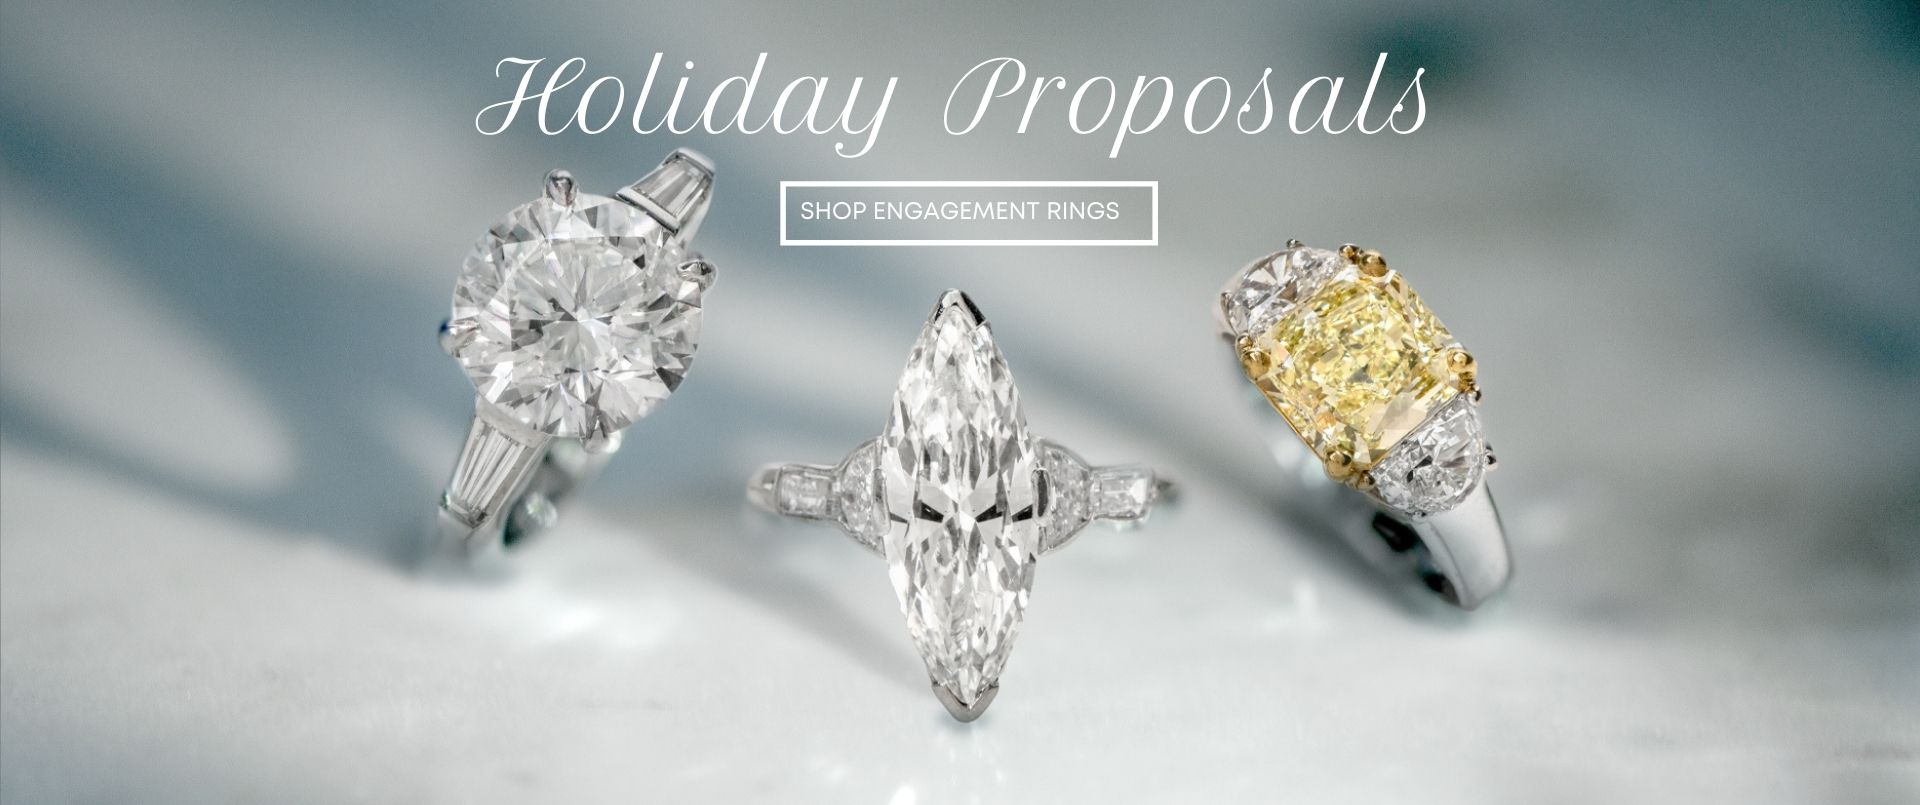 Holiday Proposals Shop for Diamond Engagement Rings